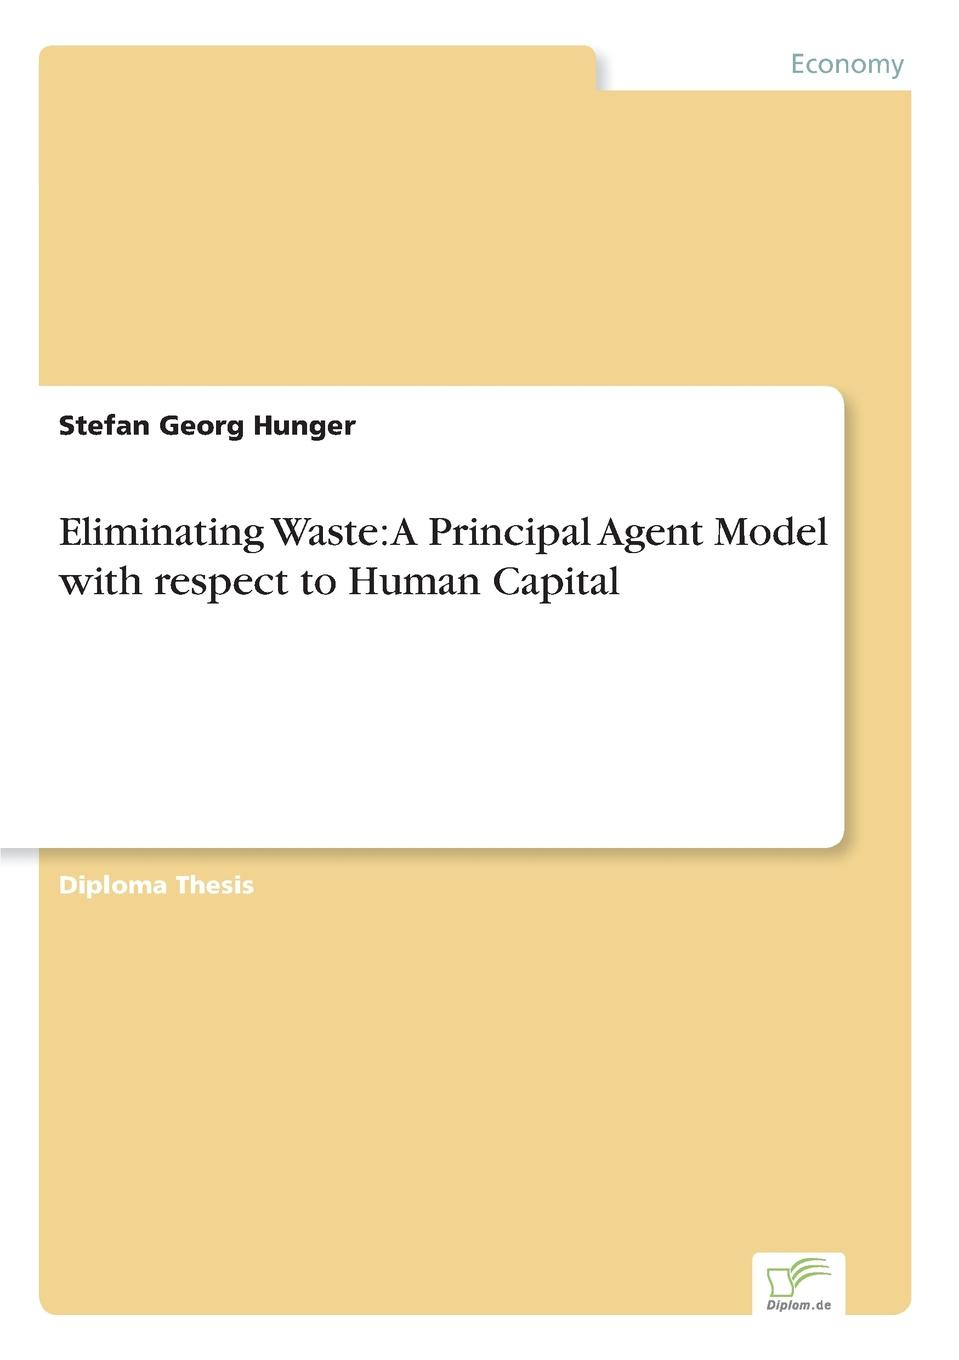 Stefan Georg Hunger Eliminating Waste. A Principal Agent Model with respect to Human Capital doris dier the motifs of utopia and dystopia in aldous huxley s brave new world